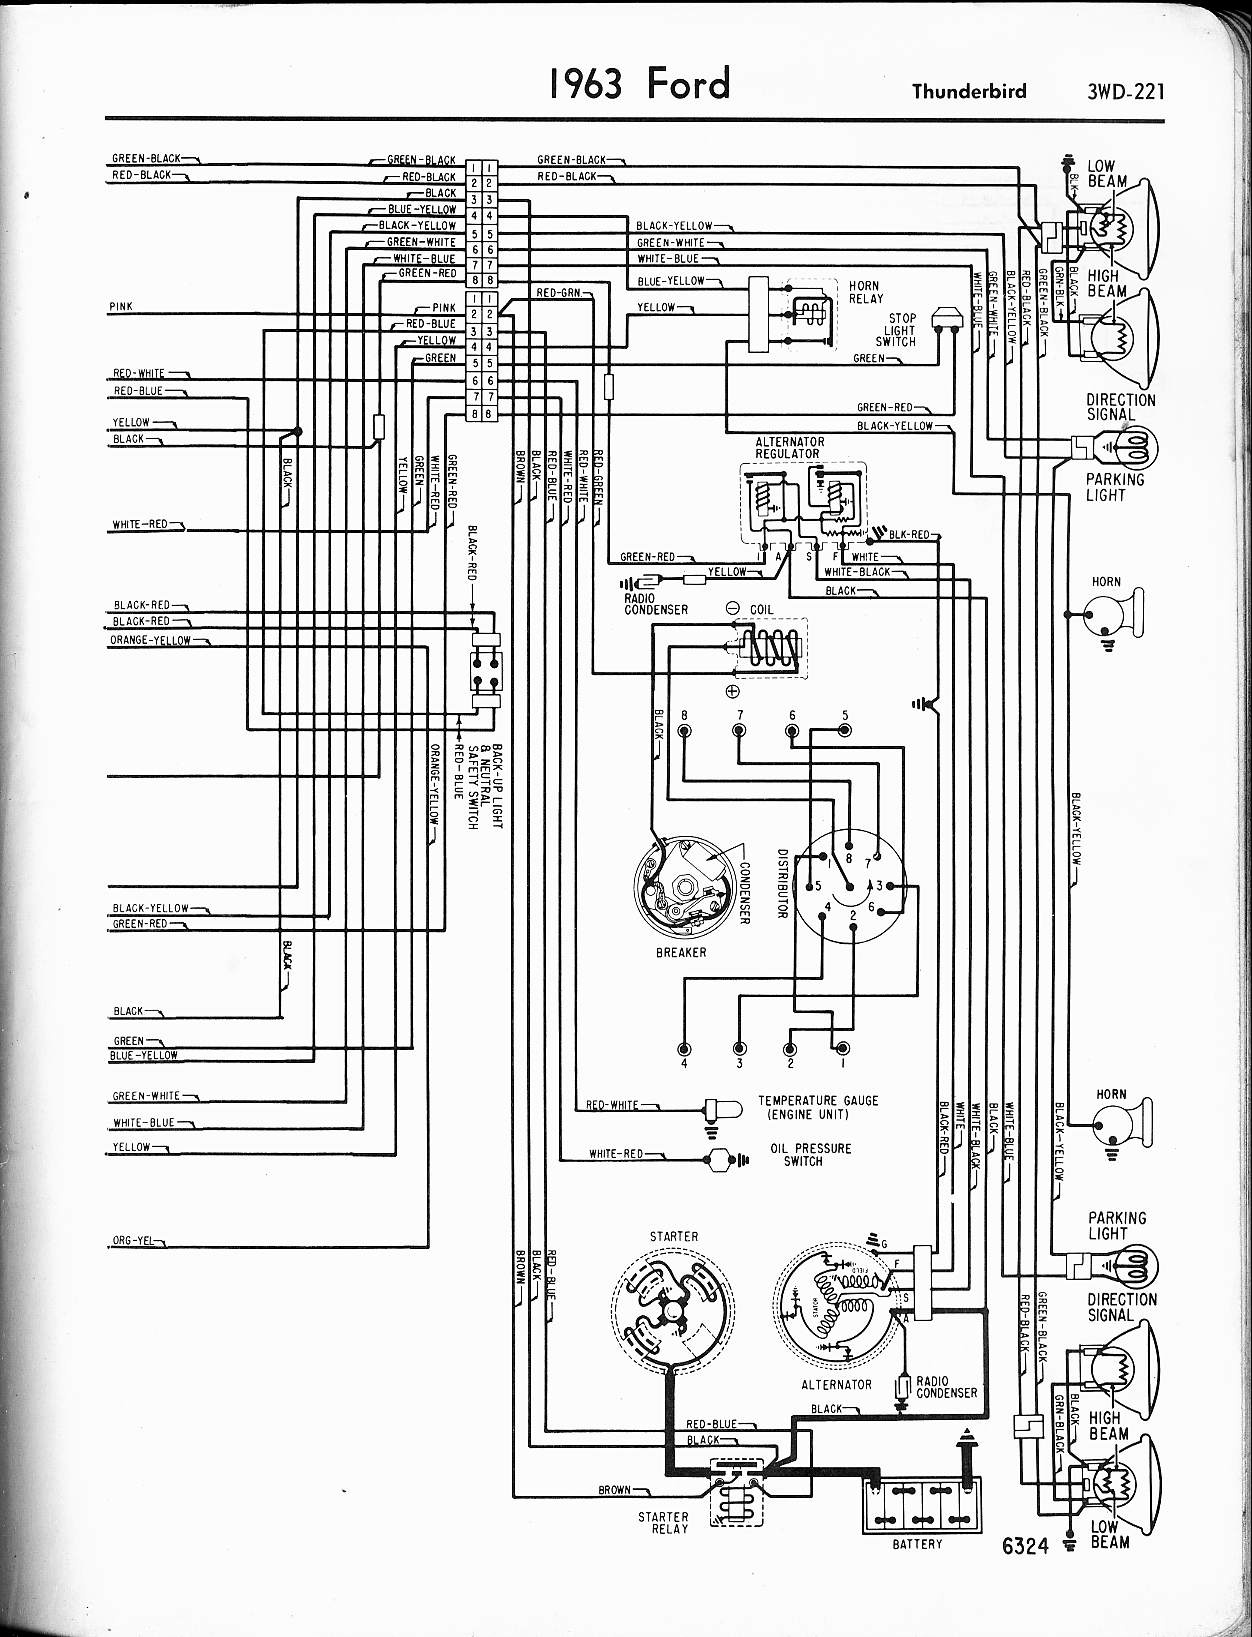 1977 ford f100 wiring diagram